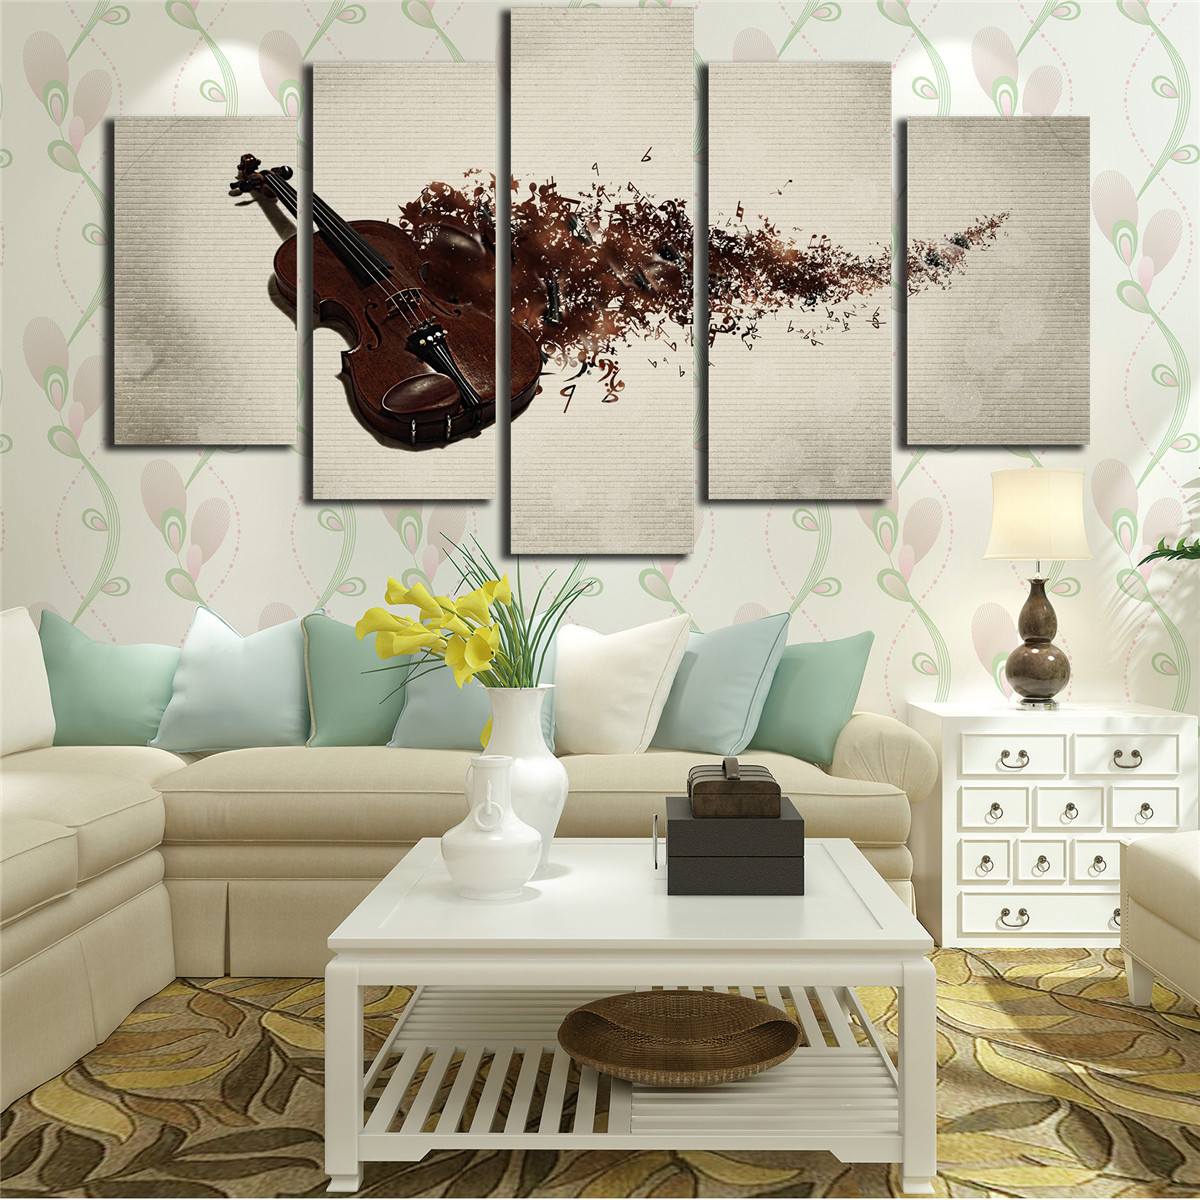 Buy vintage poster home decor canvas for International home decor stores